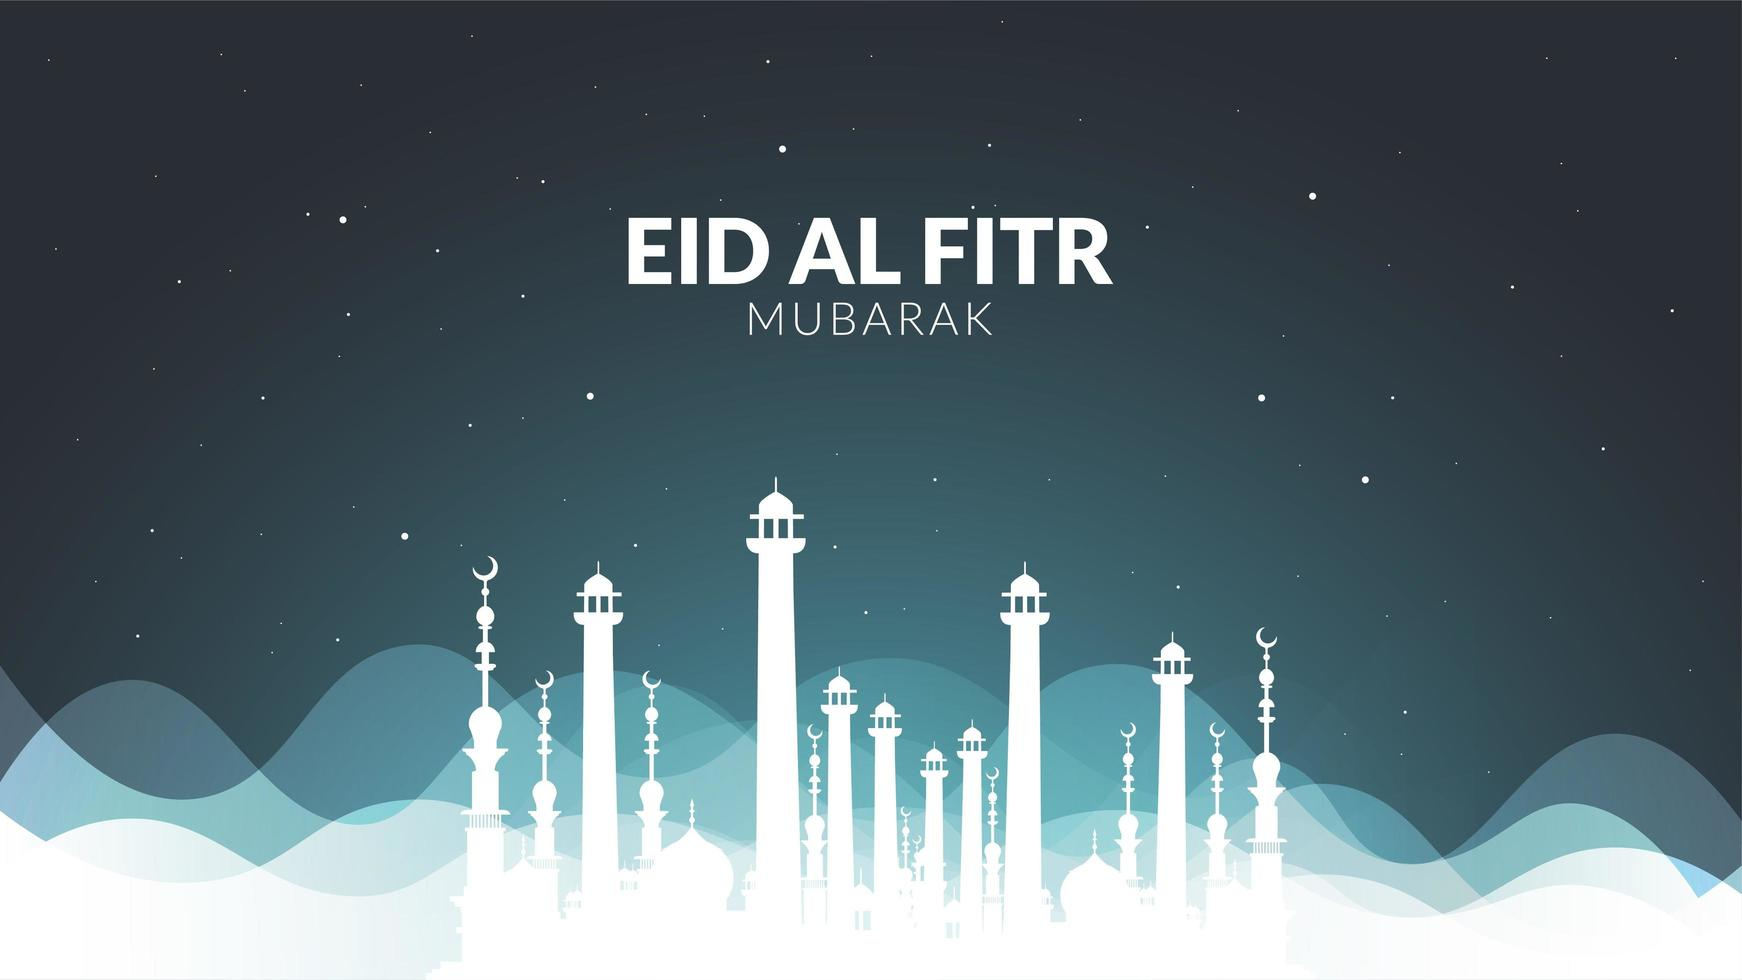 Eid Mubarak with White Mist and Starry Sky vector